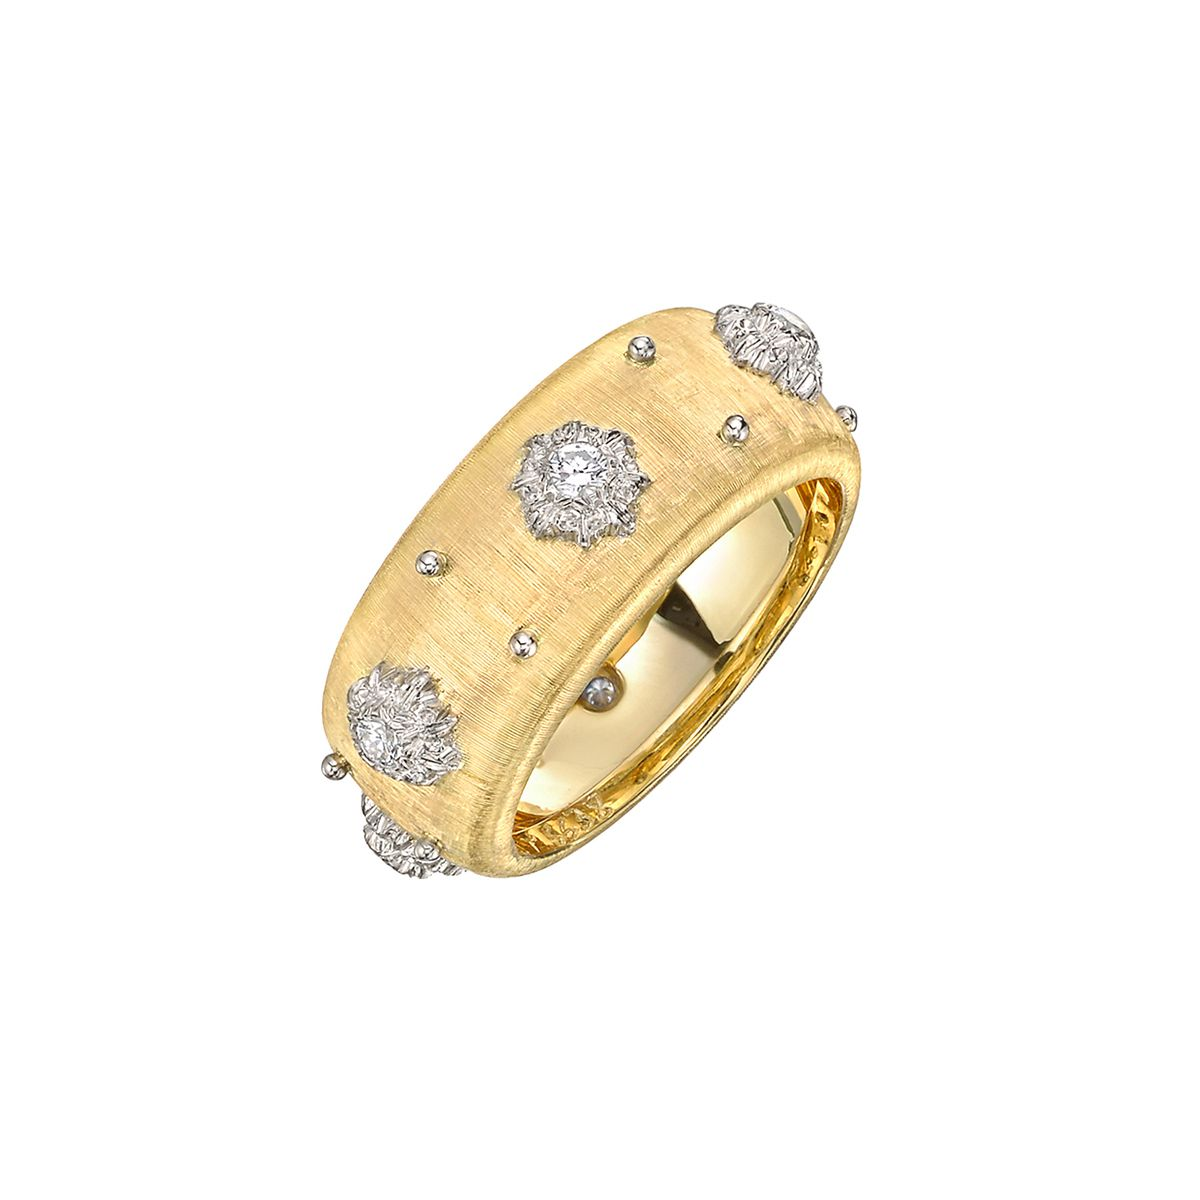 Buccellati Yellow Gold Eternelle Ring With Diamonds